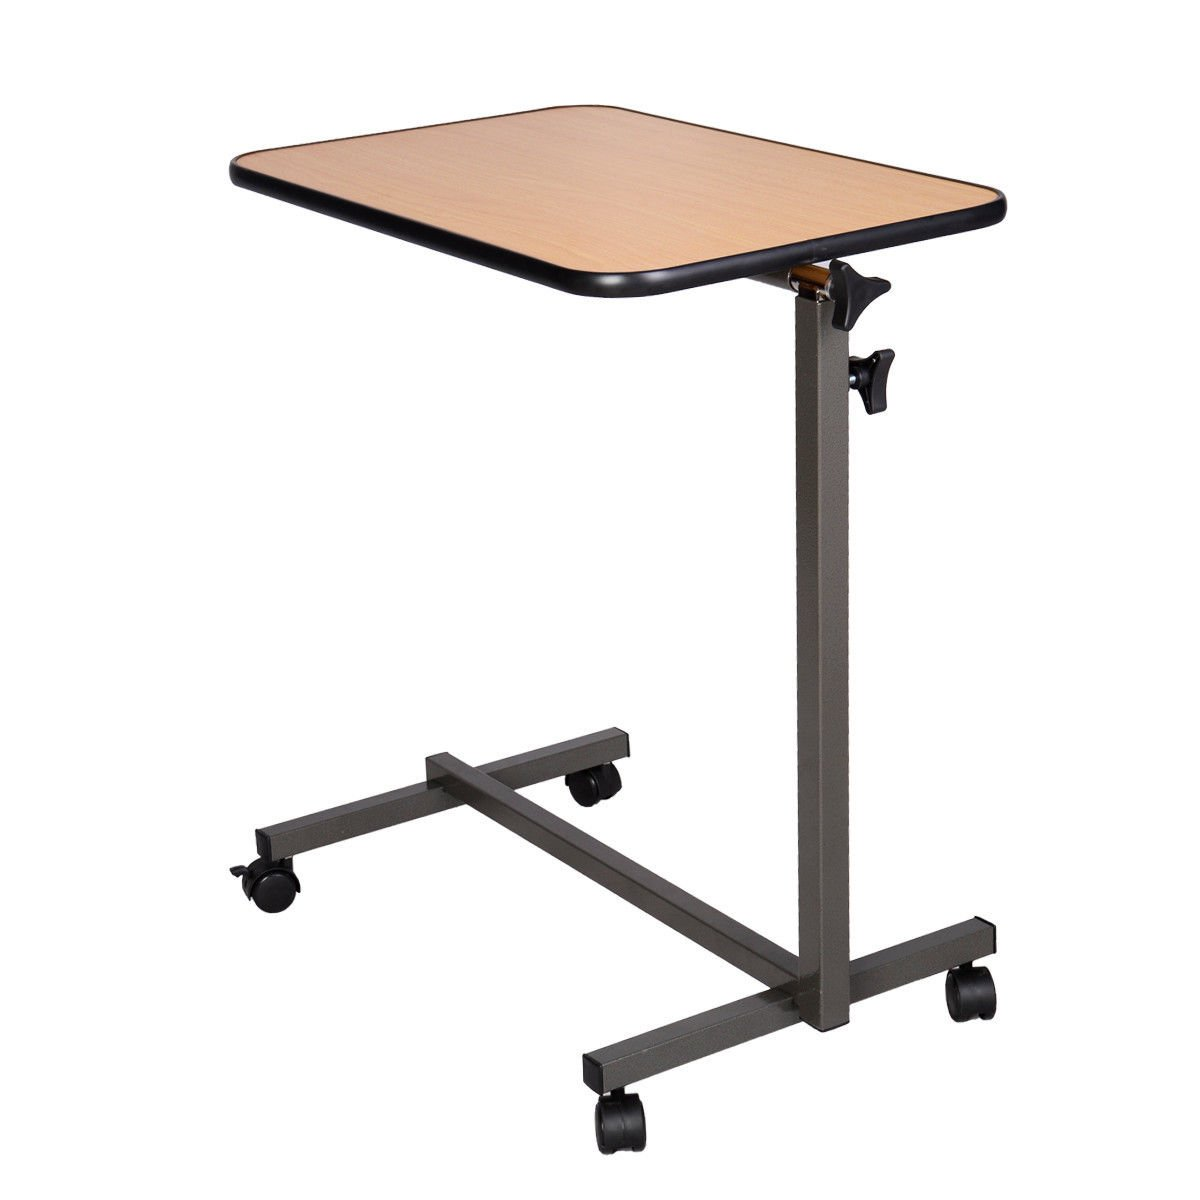 Overbed table food tray non tilt top bed hospital adjustable rolling - Amazon Com Laptop Food Tray Overbed Table Rolling Desk Hospital Over Bed With Tilting Top Kitchen Dining